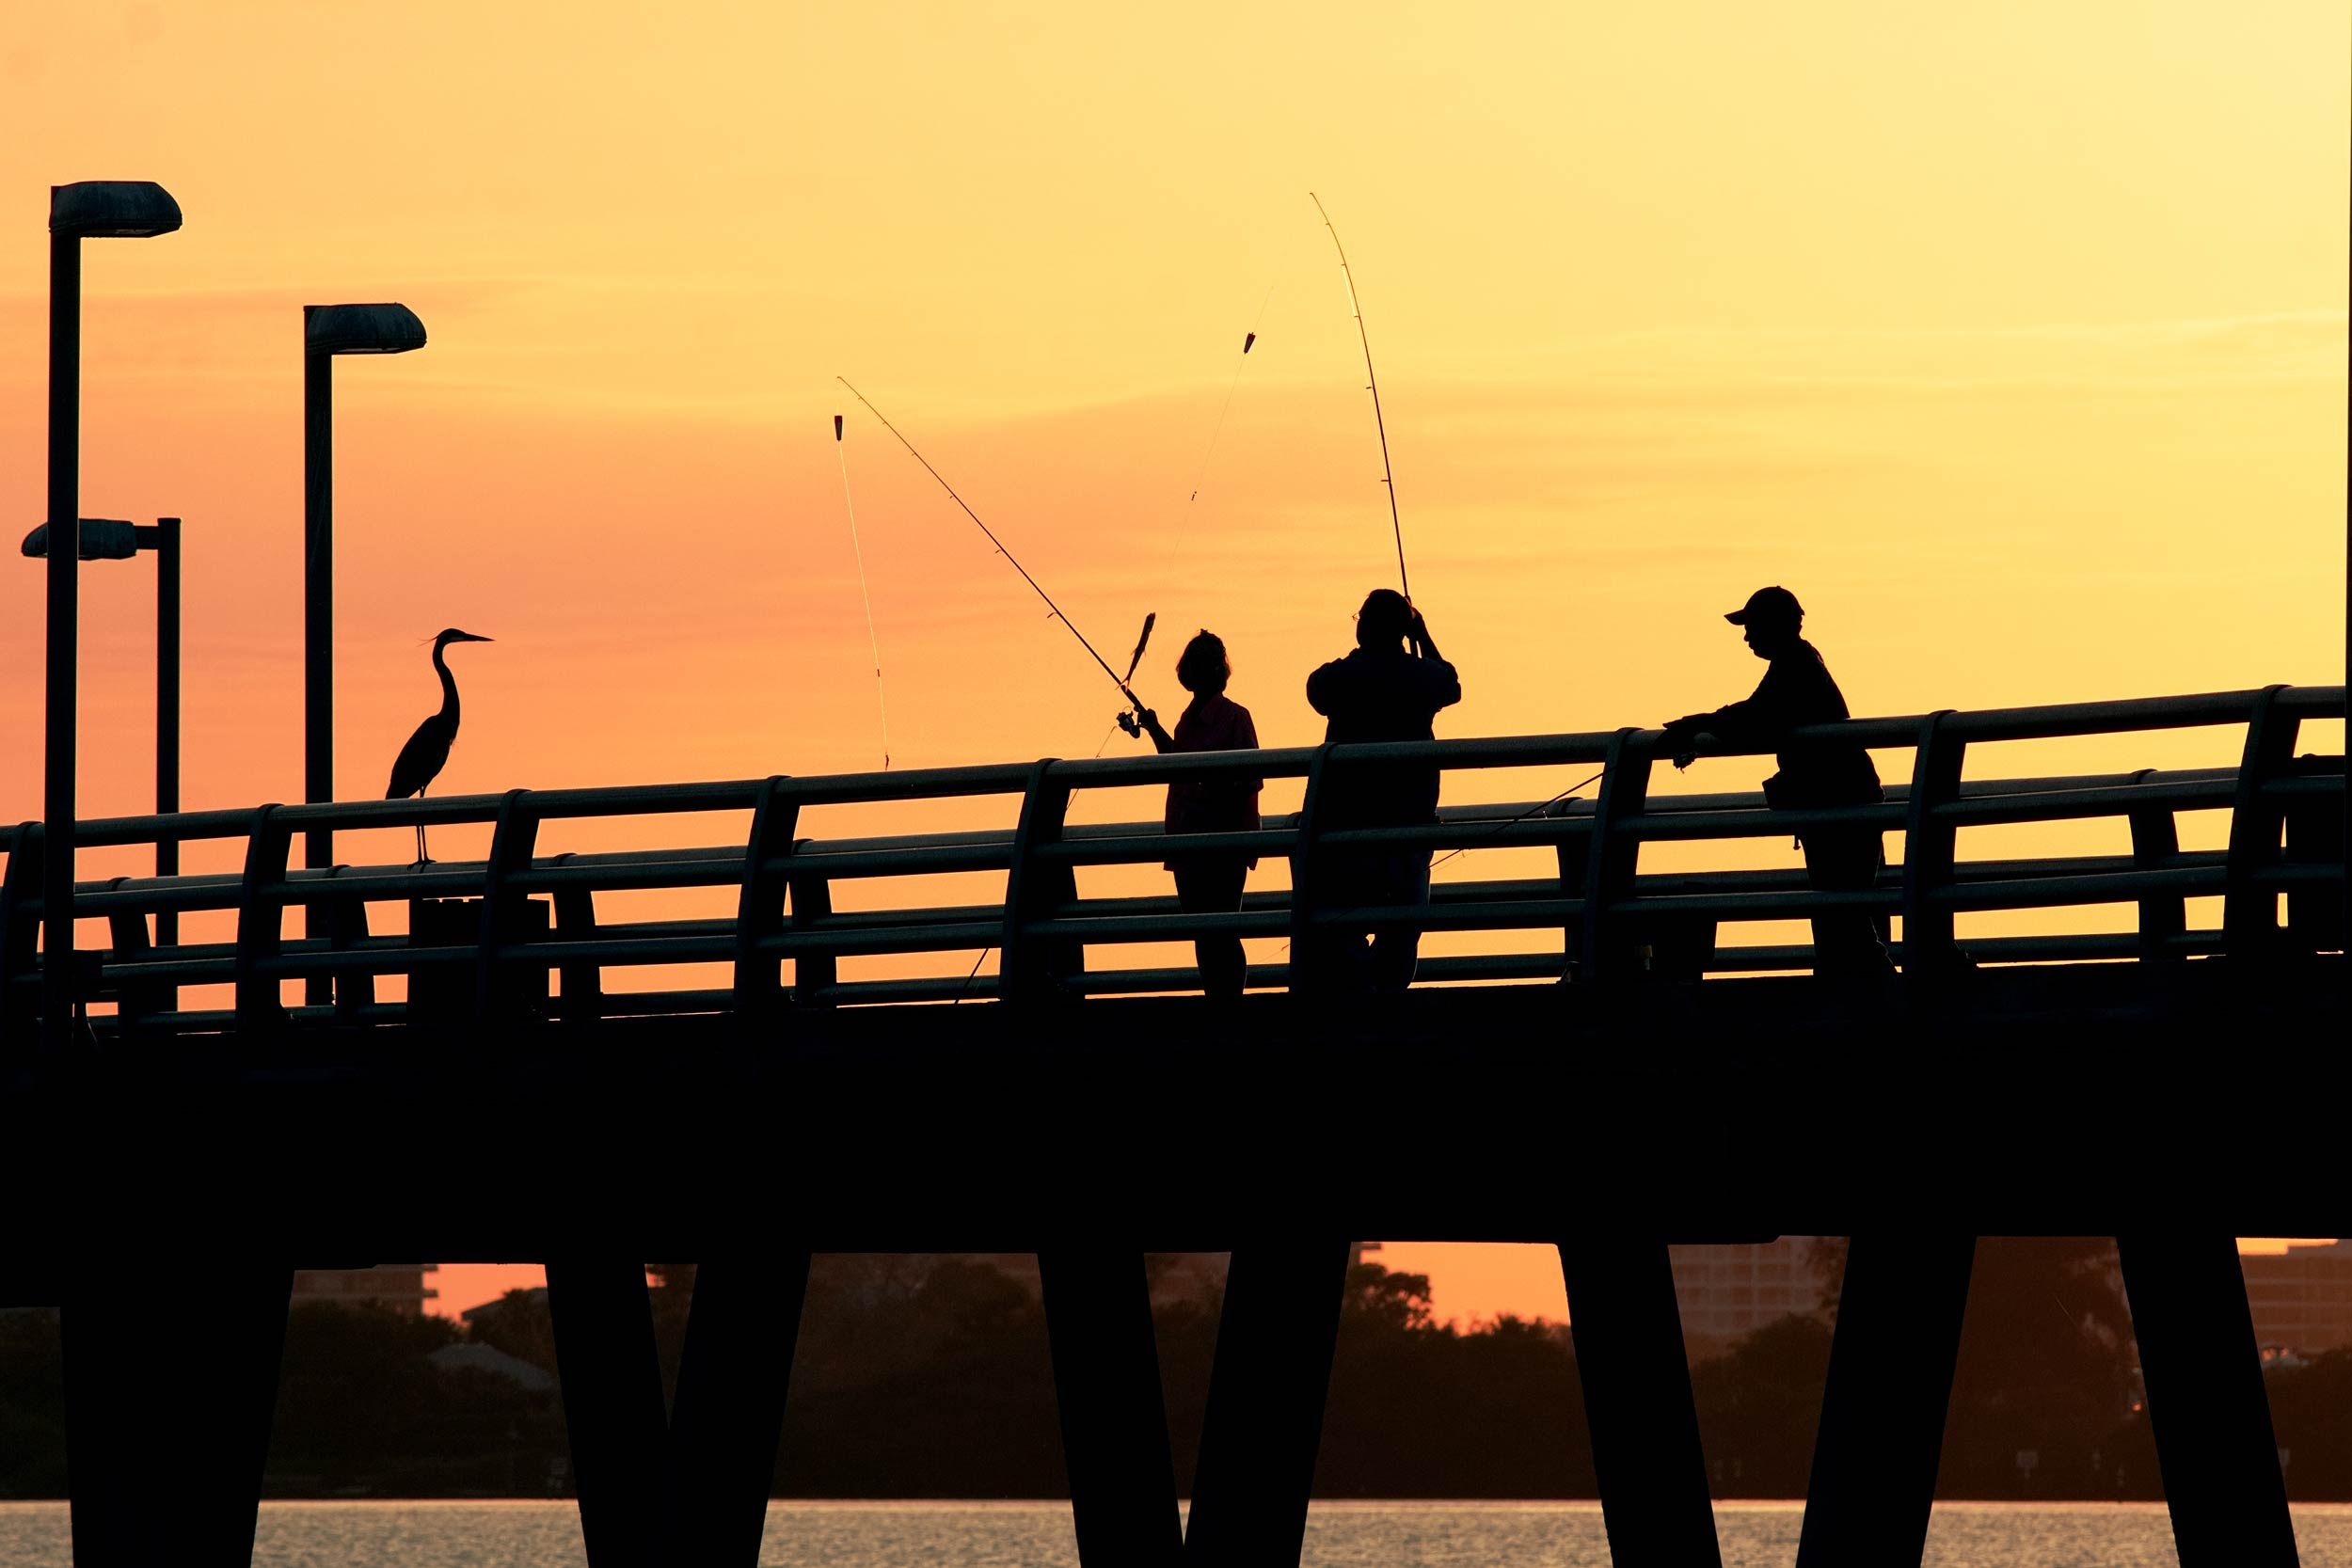 Anglers fishing from a pier at sunset